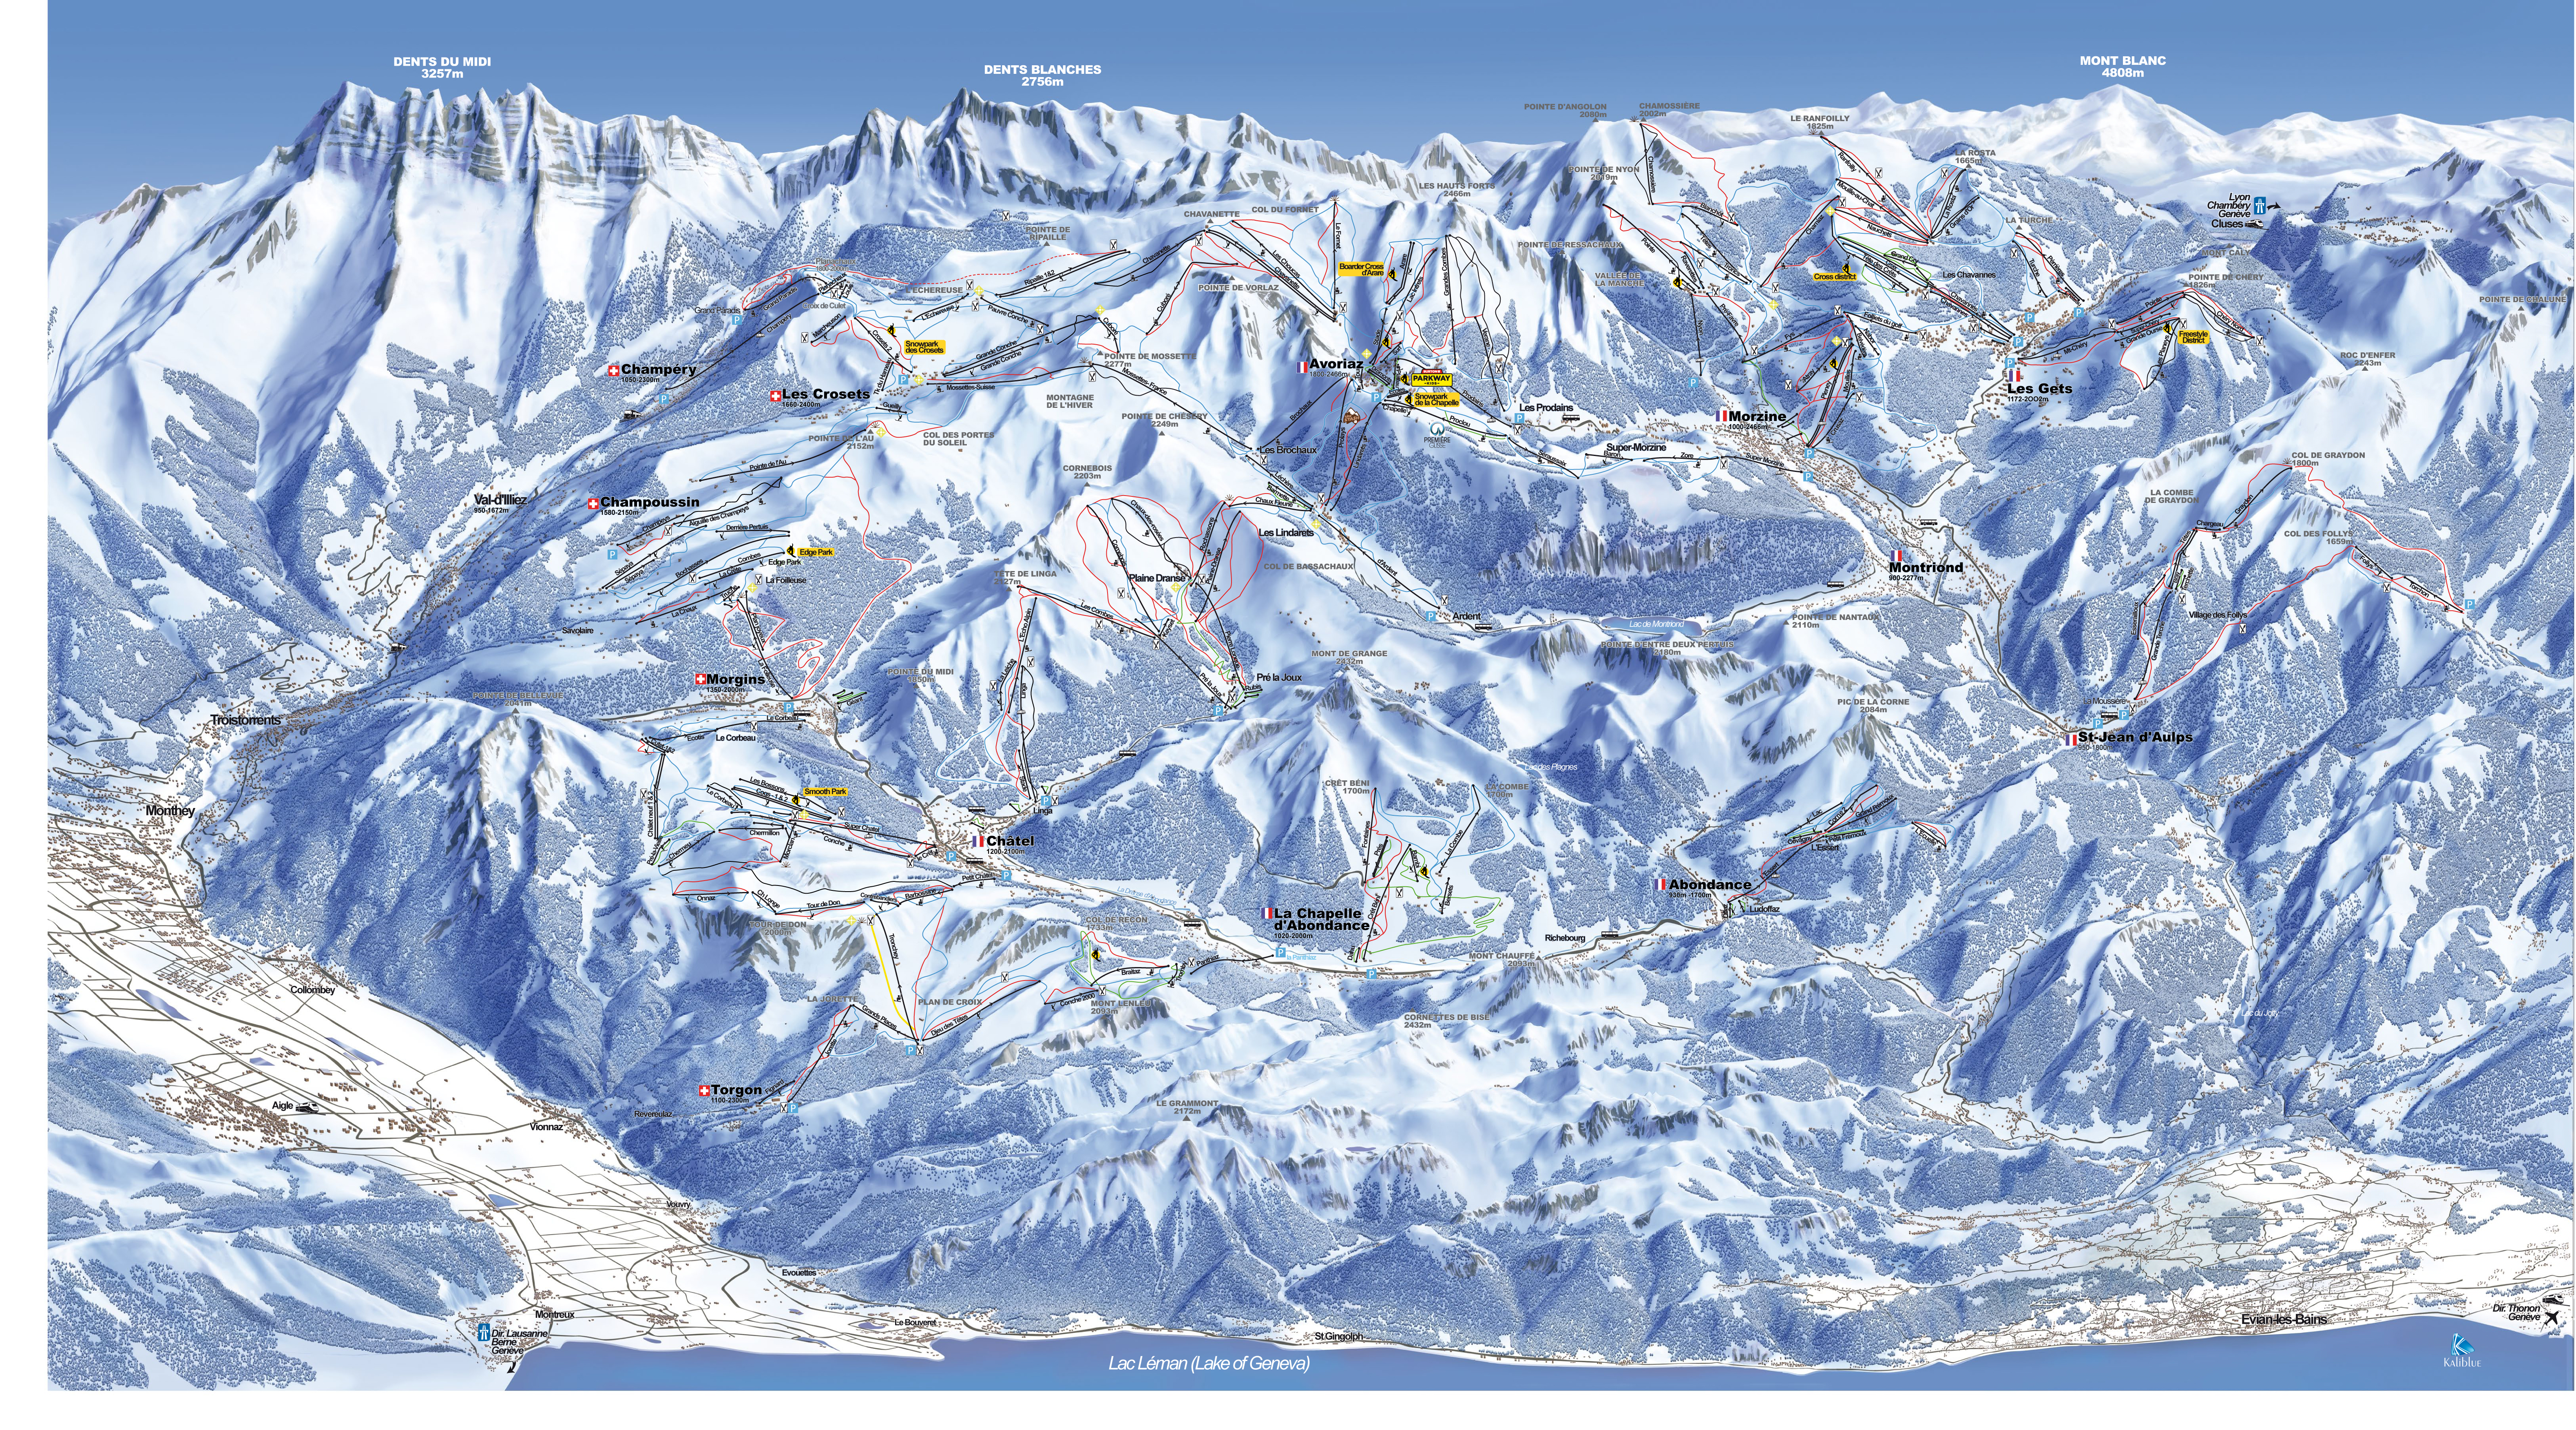 AVORIAZ MAP 0 open ski lift WinterSportscom